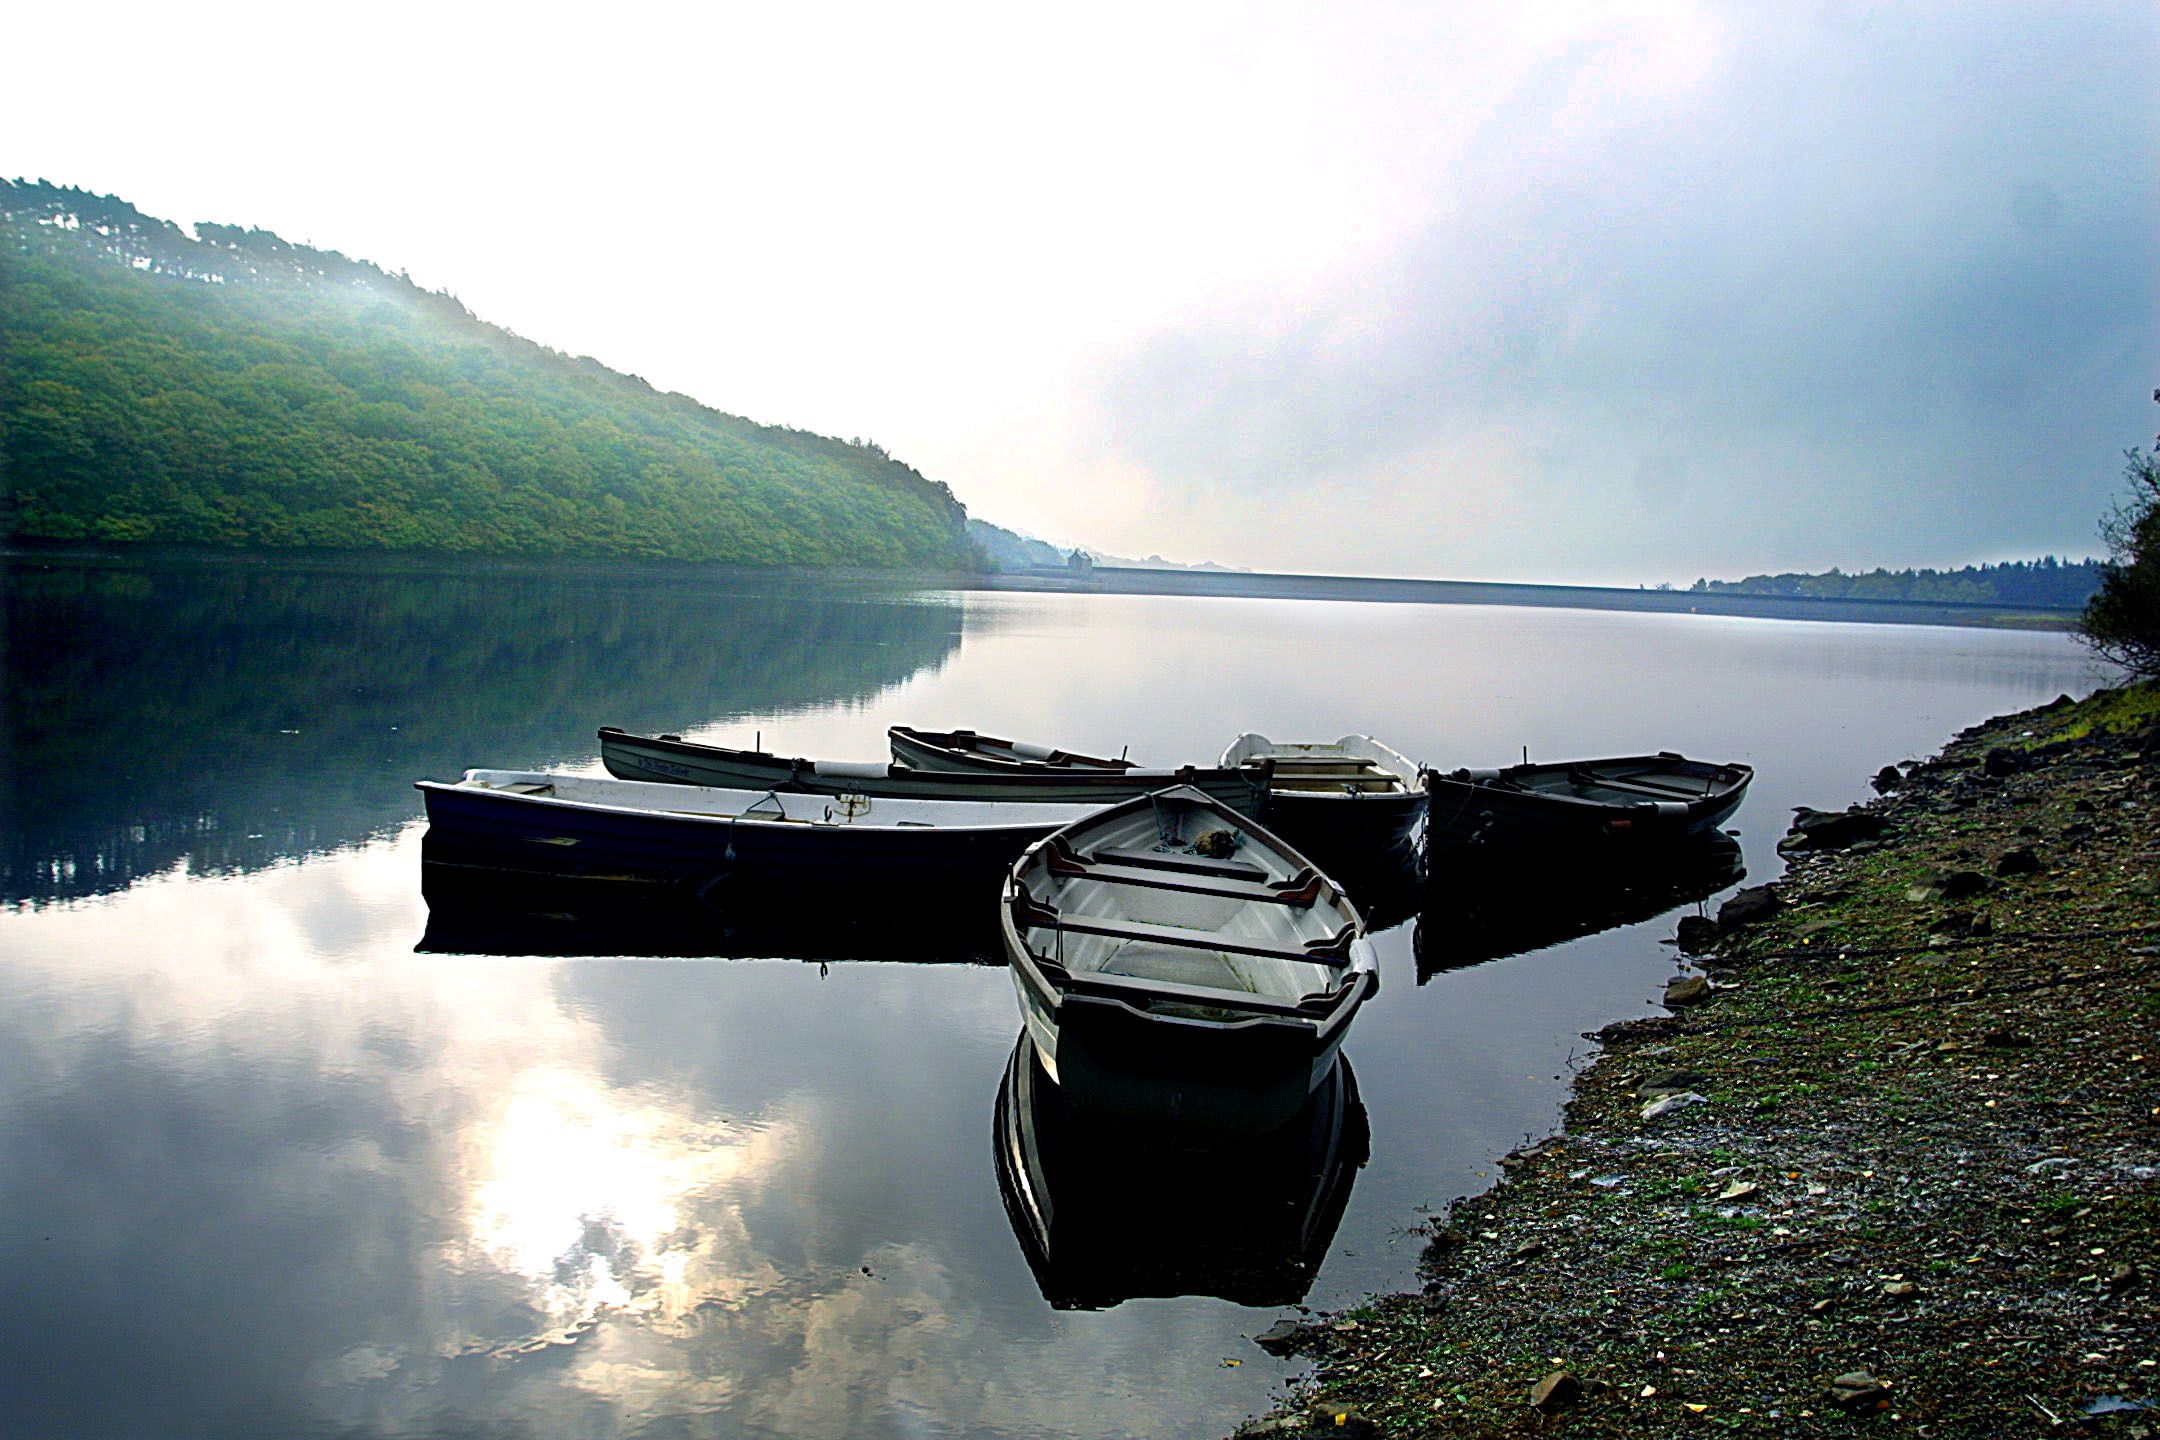 The Weardale reservoir that pioneered a technique now used across the world